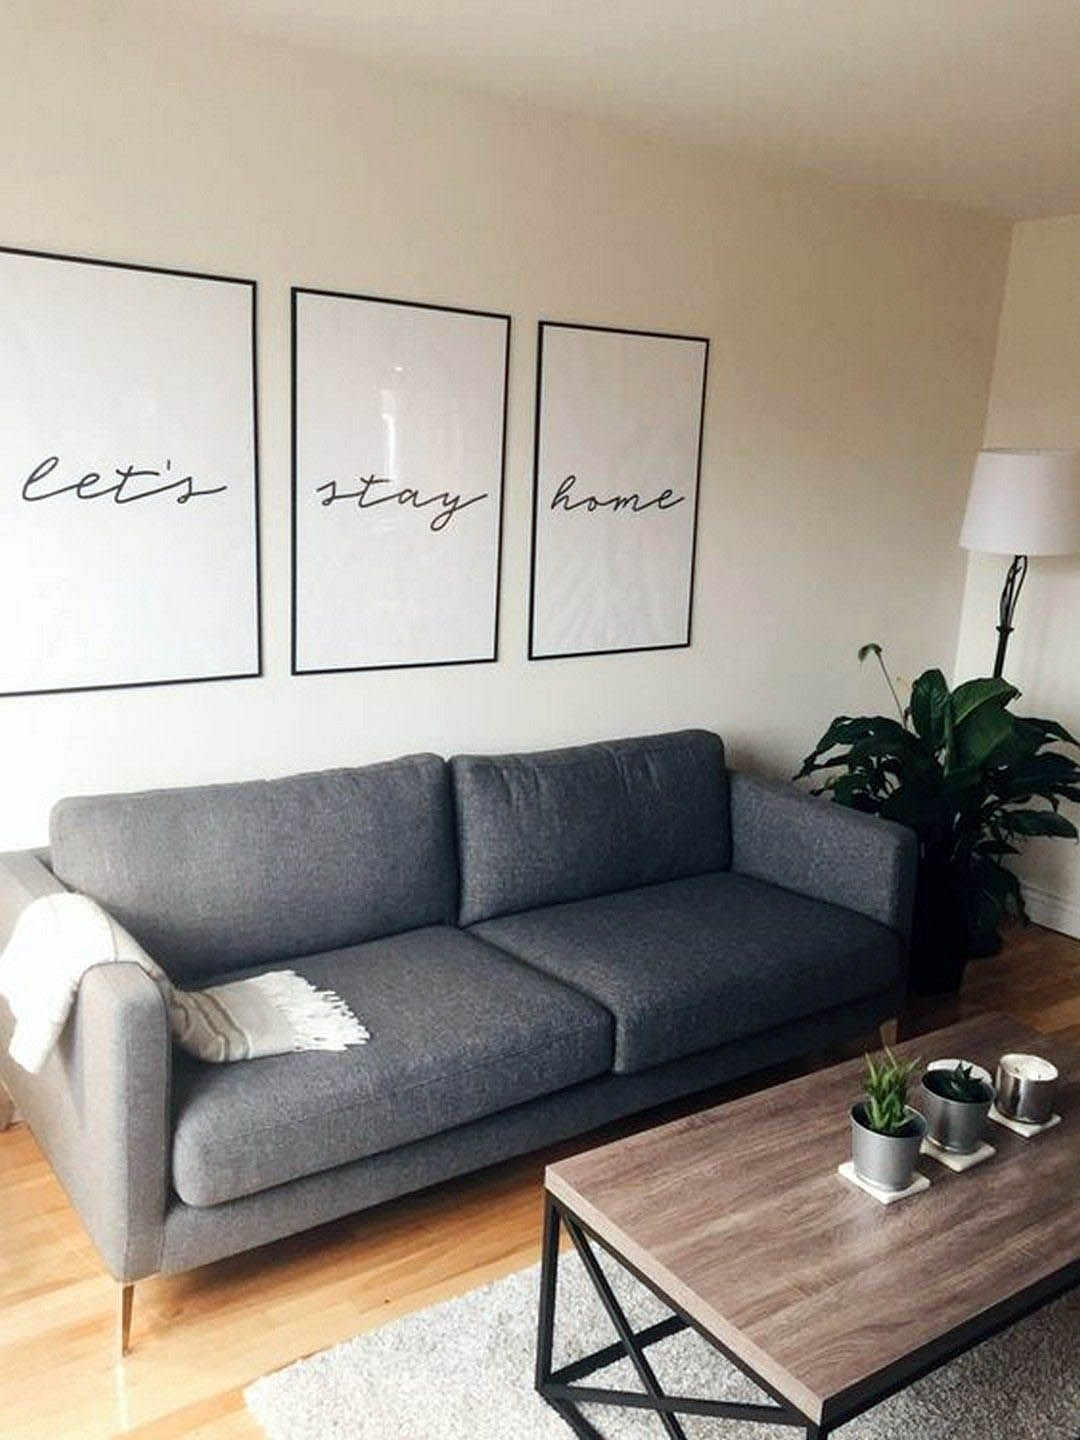 Hottest Living Room Design Ideas In A Small Space To Try35